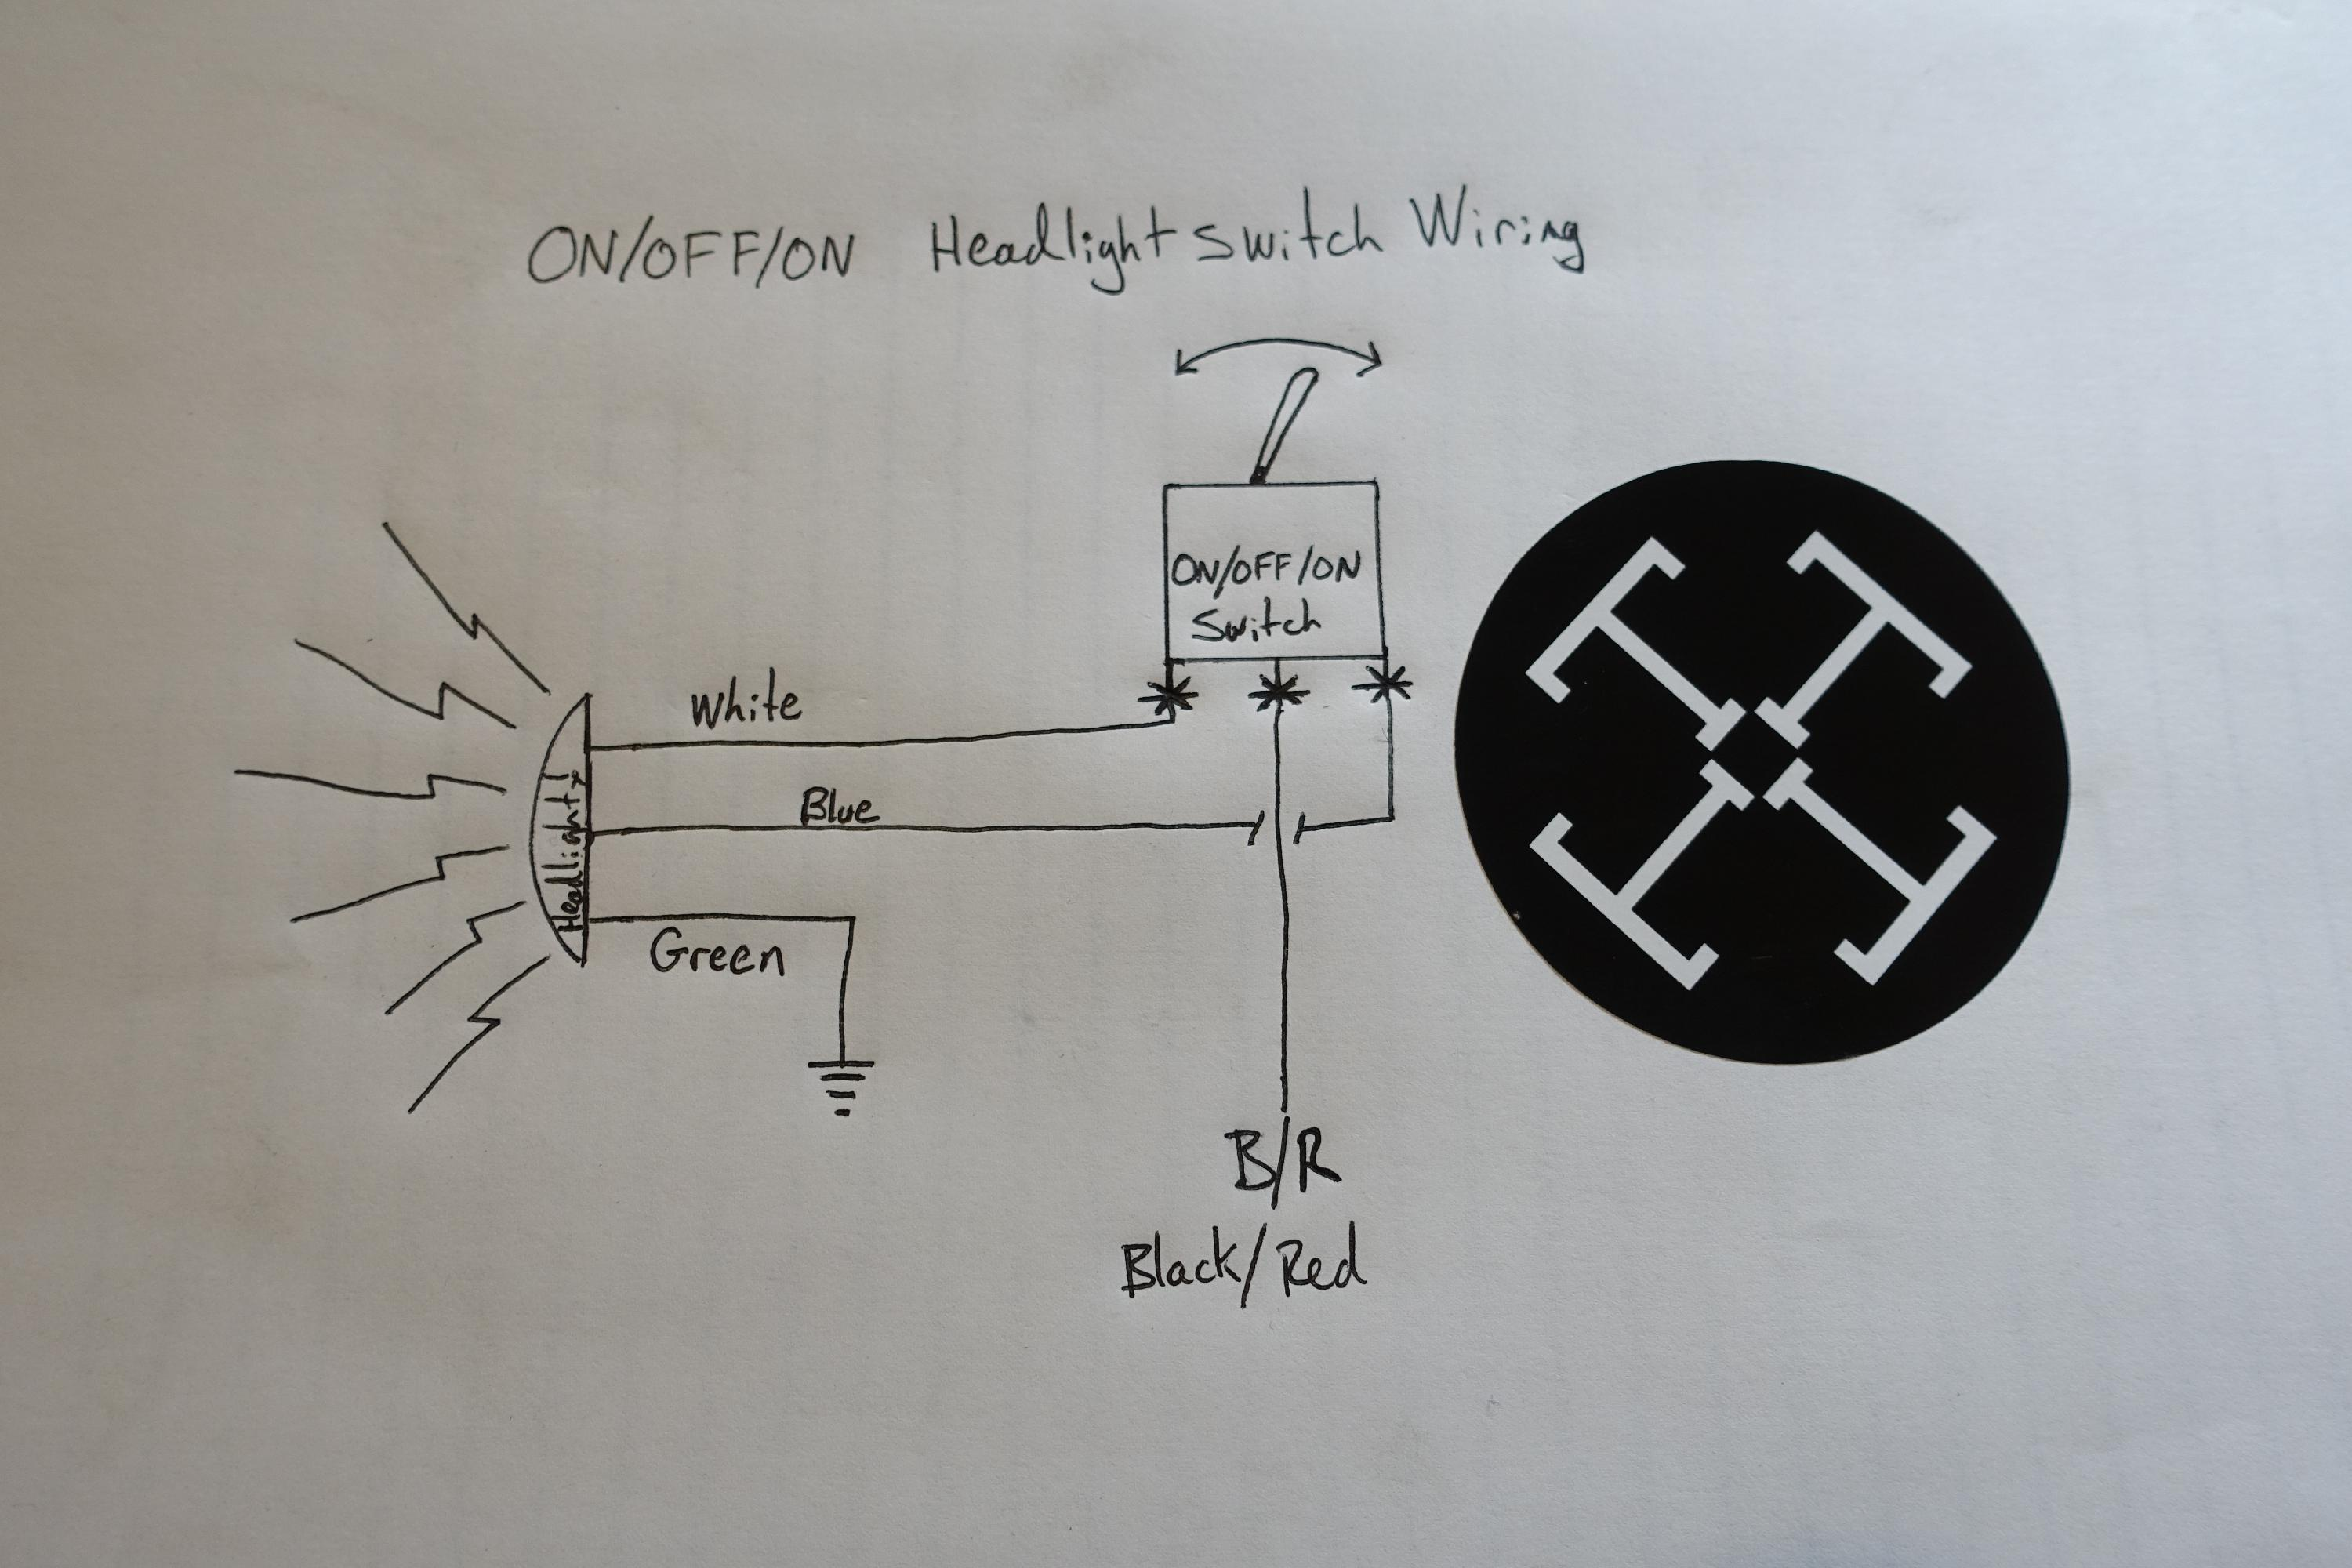 Headlight Switch Wiring For On Off Toggle Tj Brutal Wire Schematic Categories